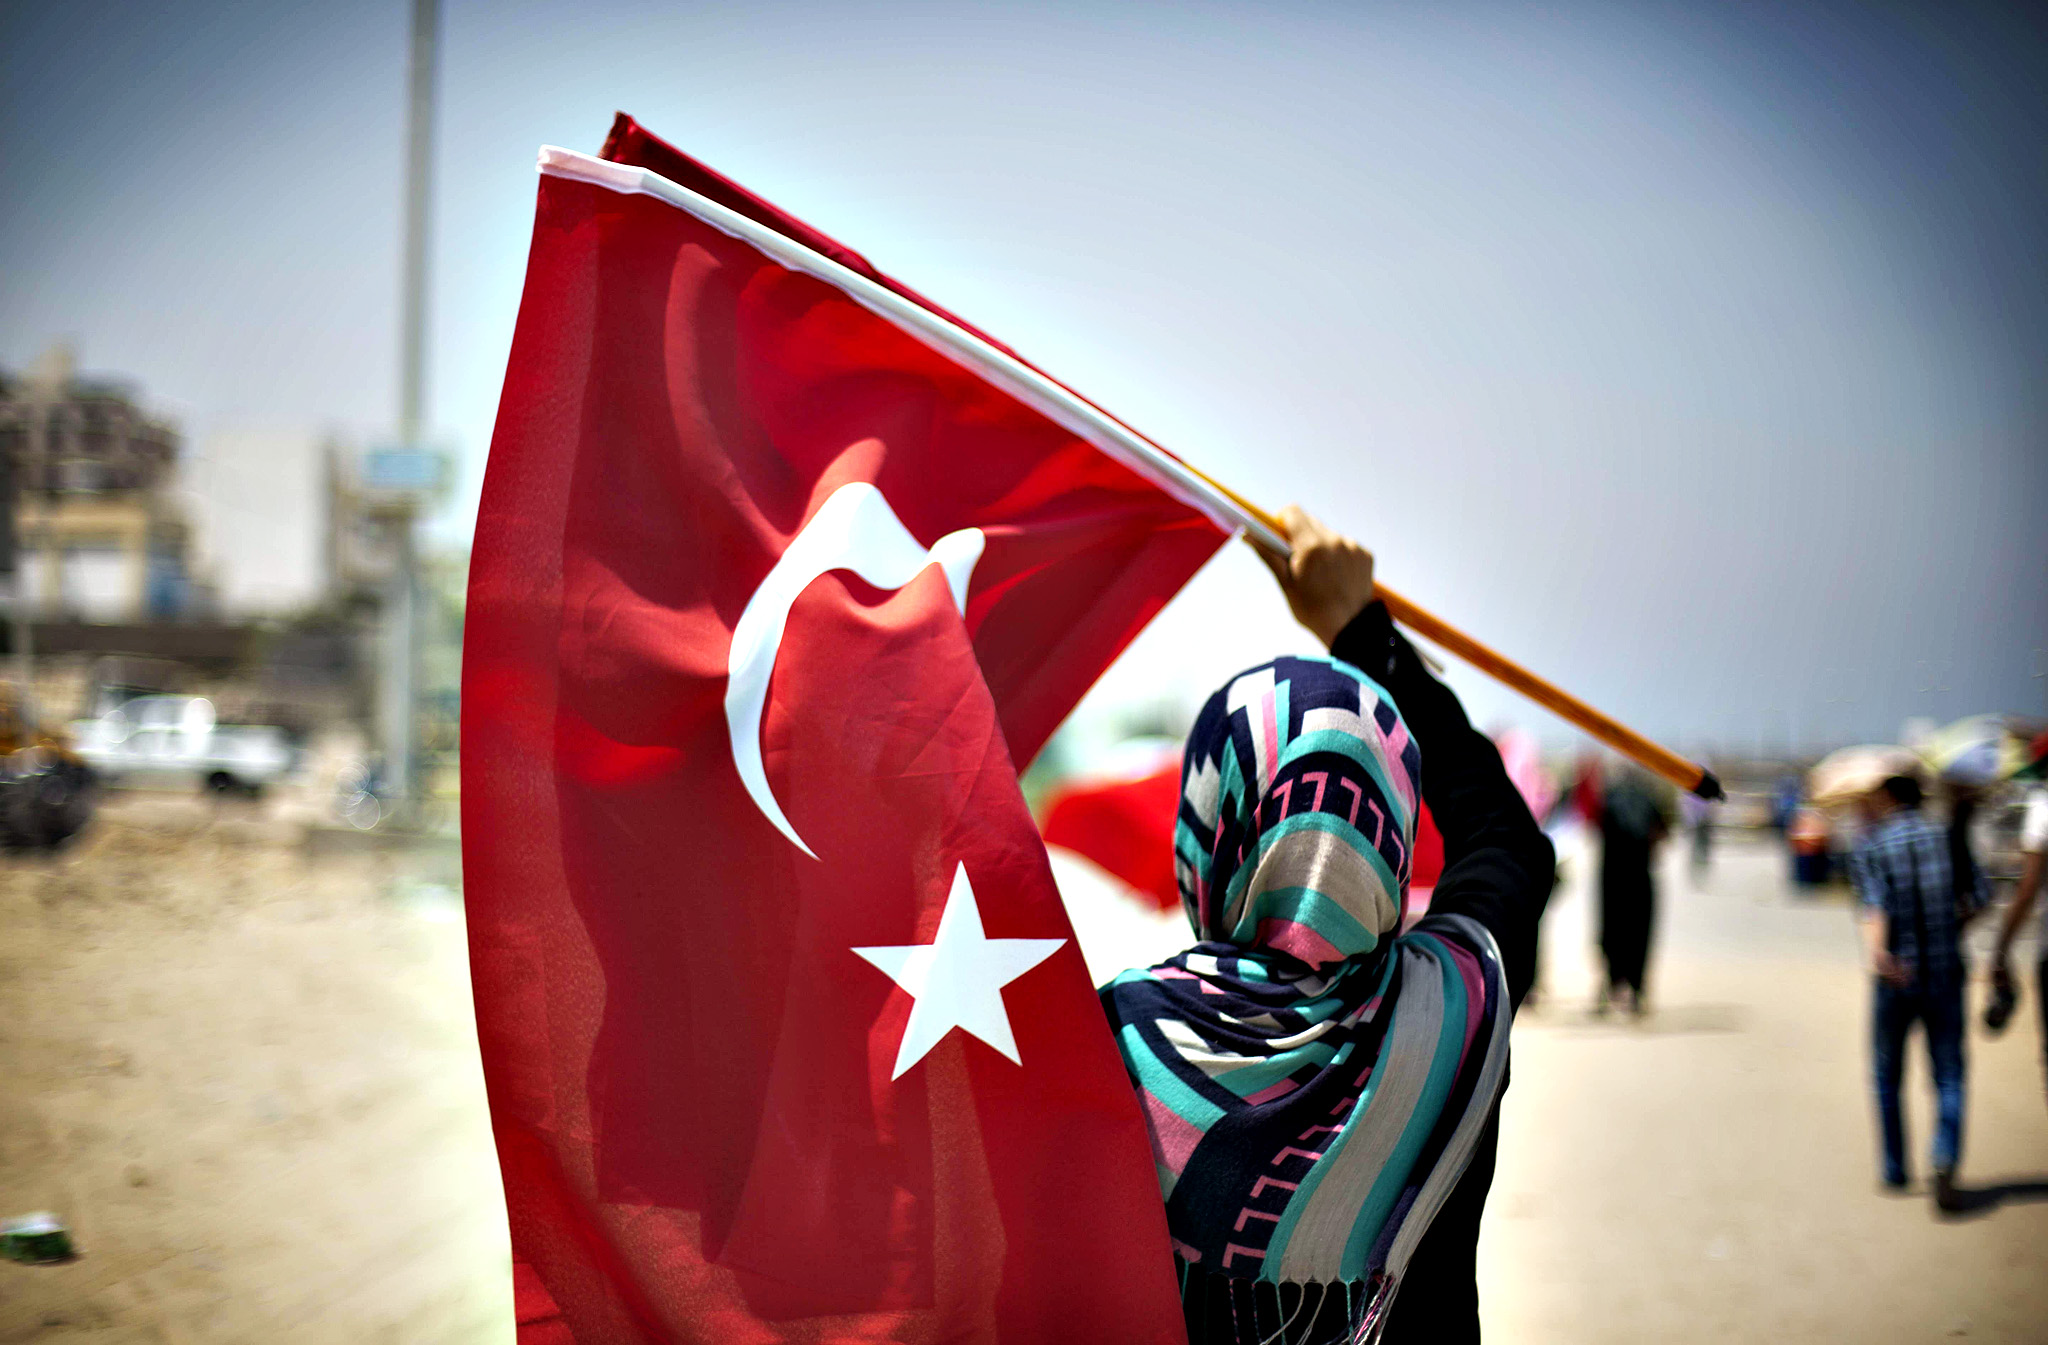 A Palestinian girl holds Turkish flags in Gaza Port on May 29, 2014 during the visit of Turkish ambassador in Palestine Mustafa Sarnic (unseen) to lay flowers at the memorial of martyrs from the Turkish ship Mavi Marmara, that was part of a flotilla trying to break the Gaza blockade, who were killed when Israeli naval commandos seized the ship in May 2010.